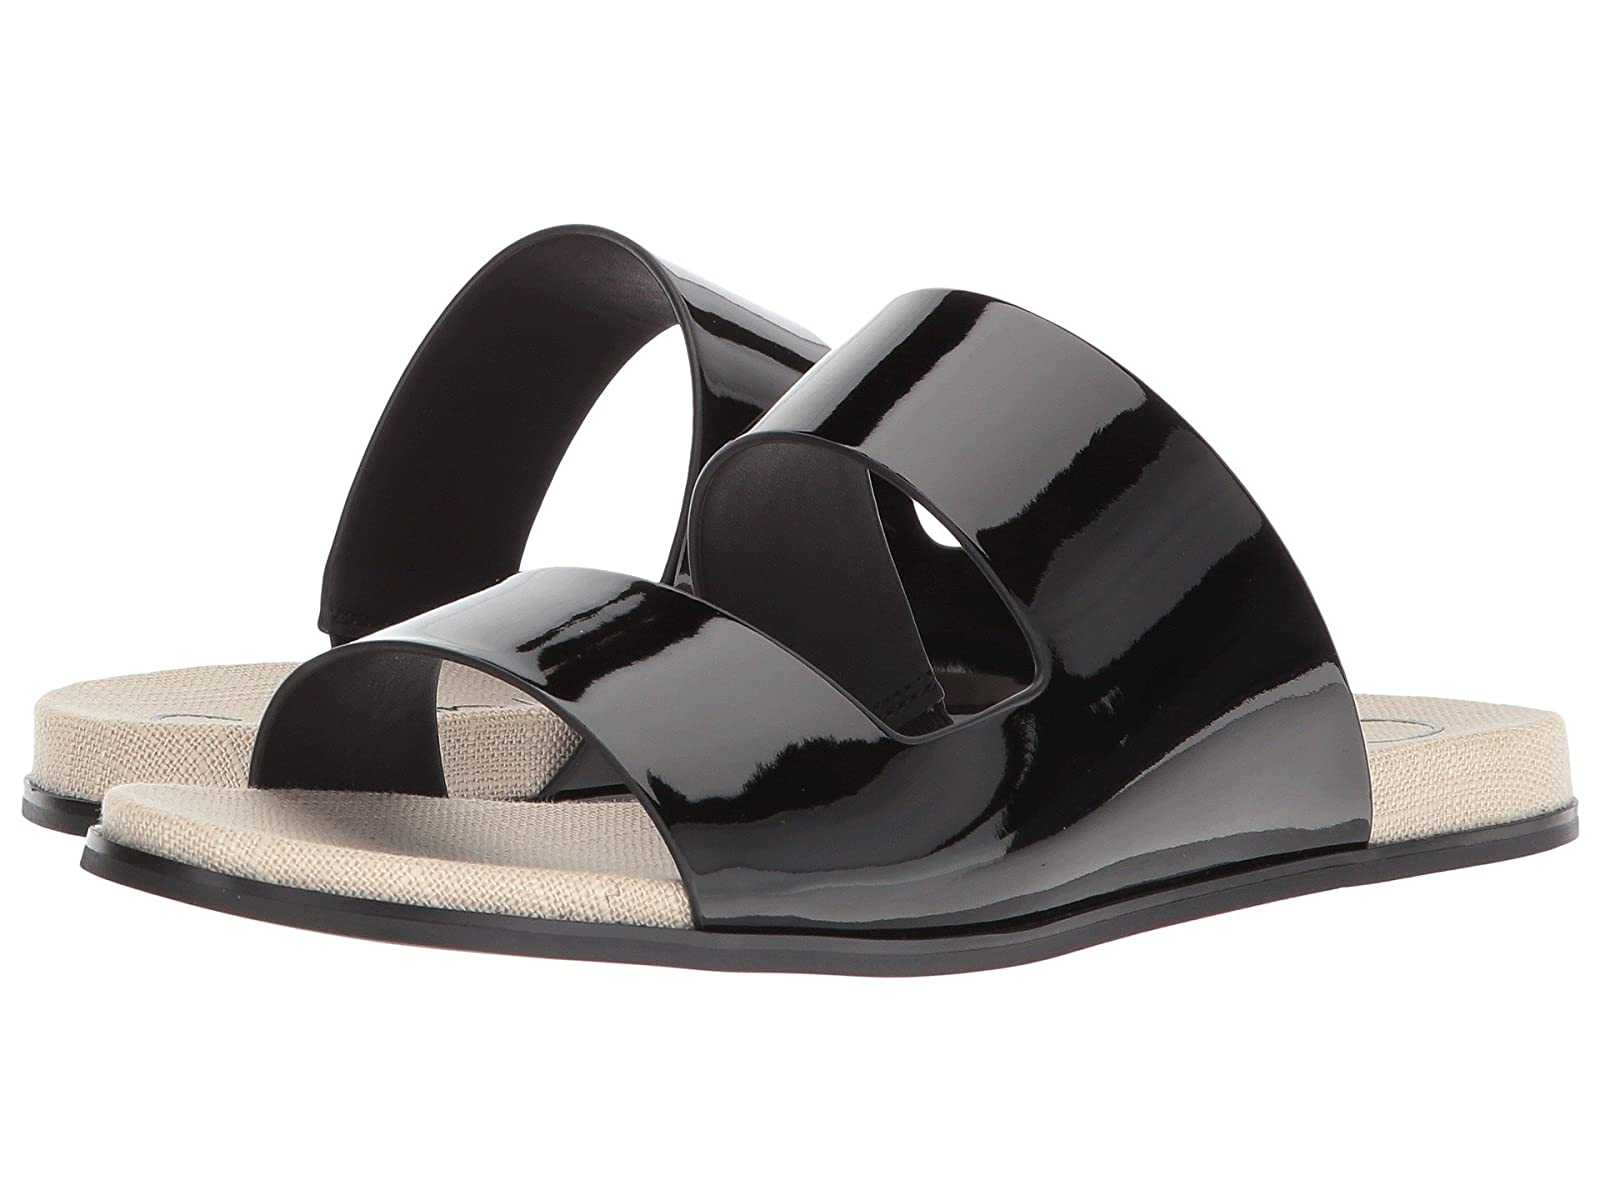 Calvin Klein Posey SlideCheap and distinctive eye-catching shoes